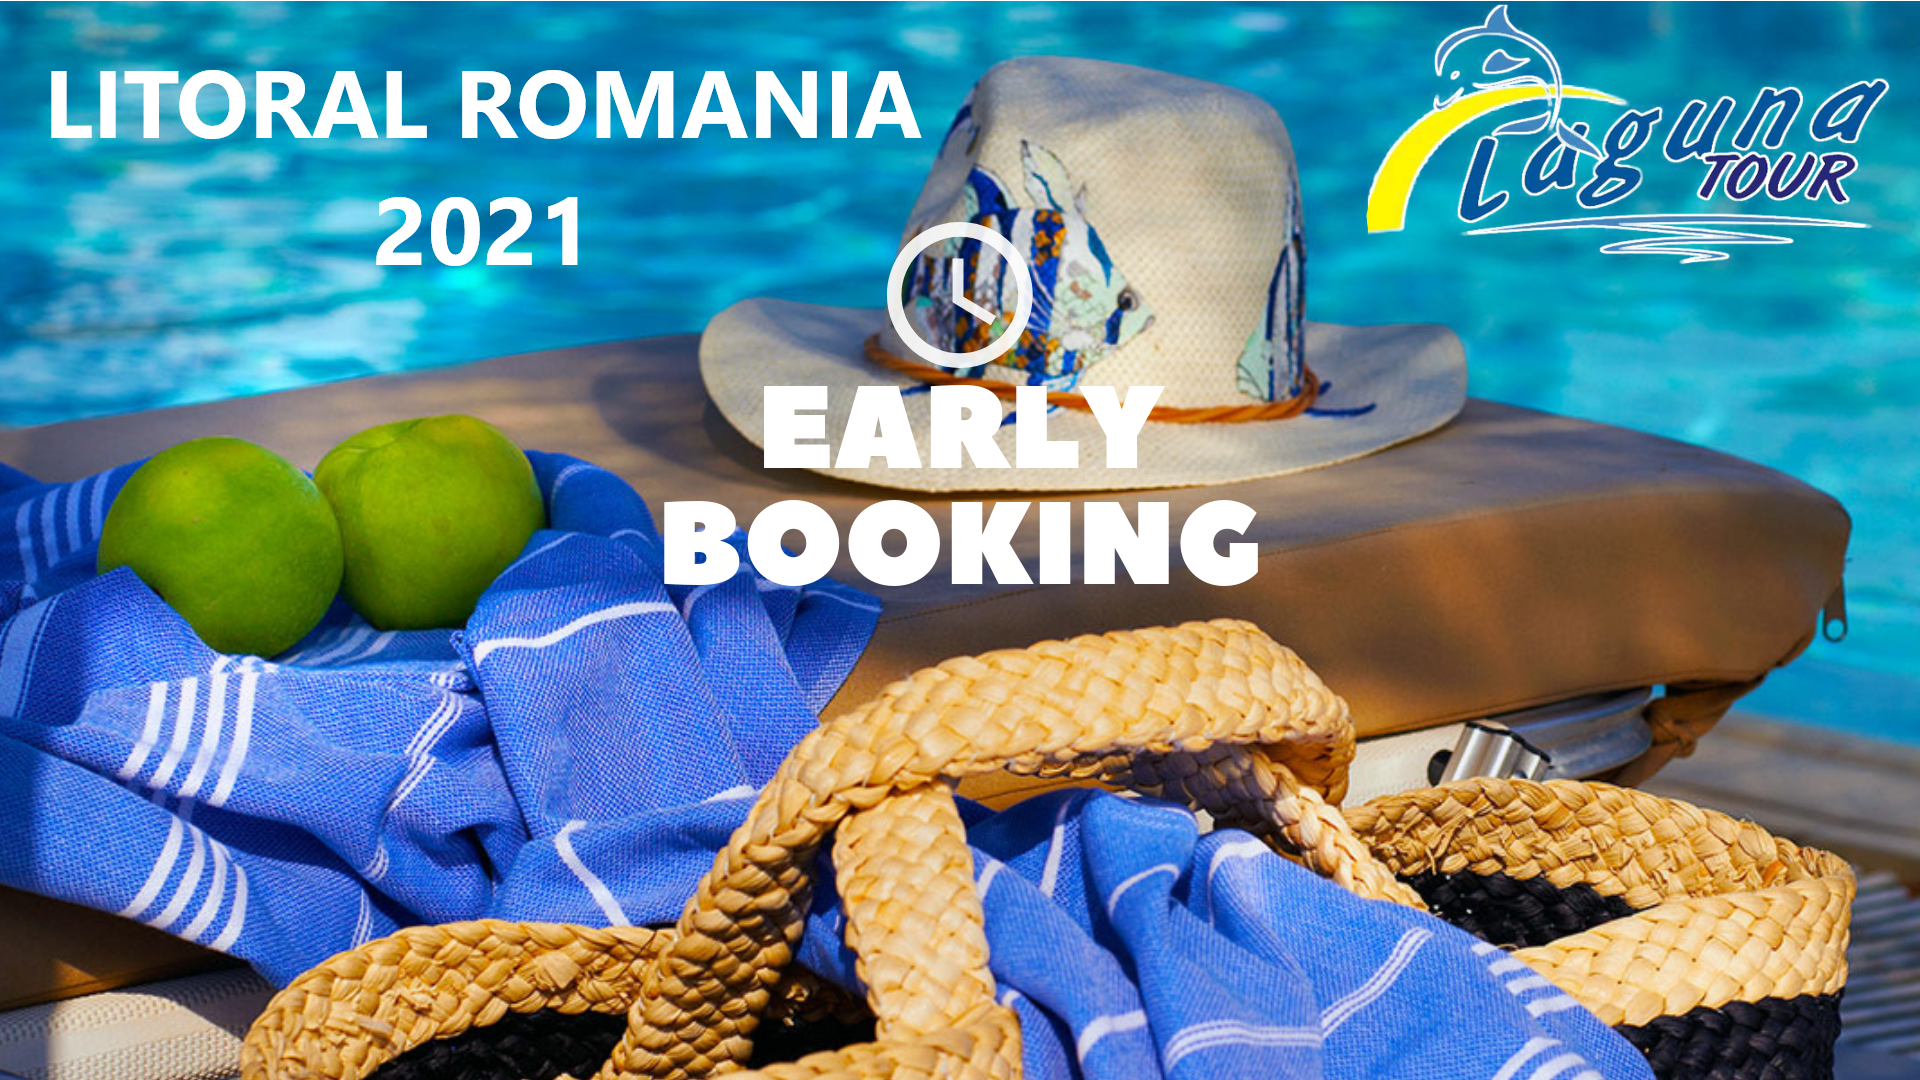 Early Booking LITORAL ROMANIA